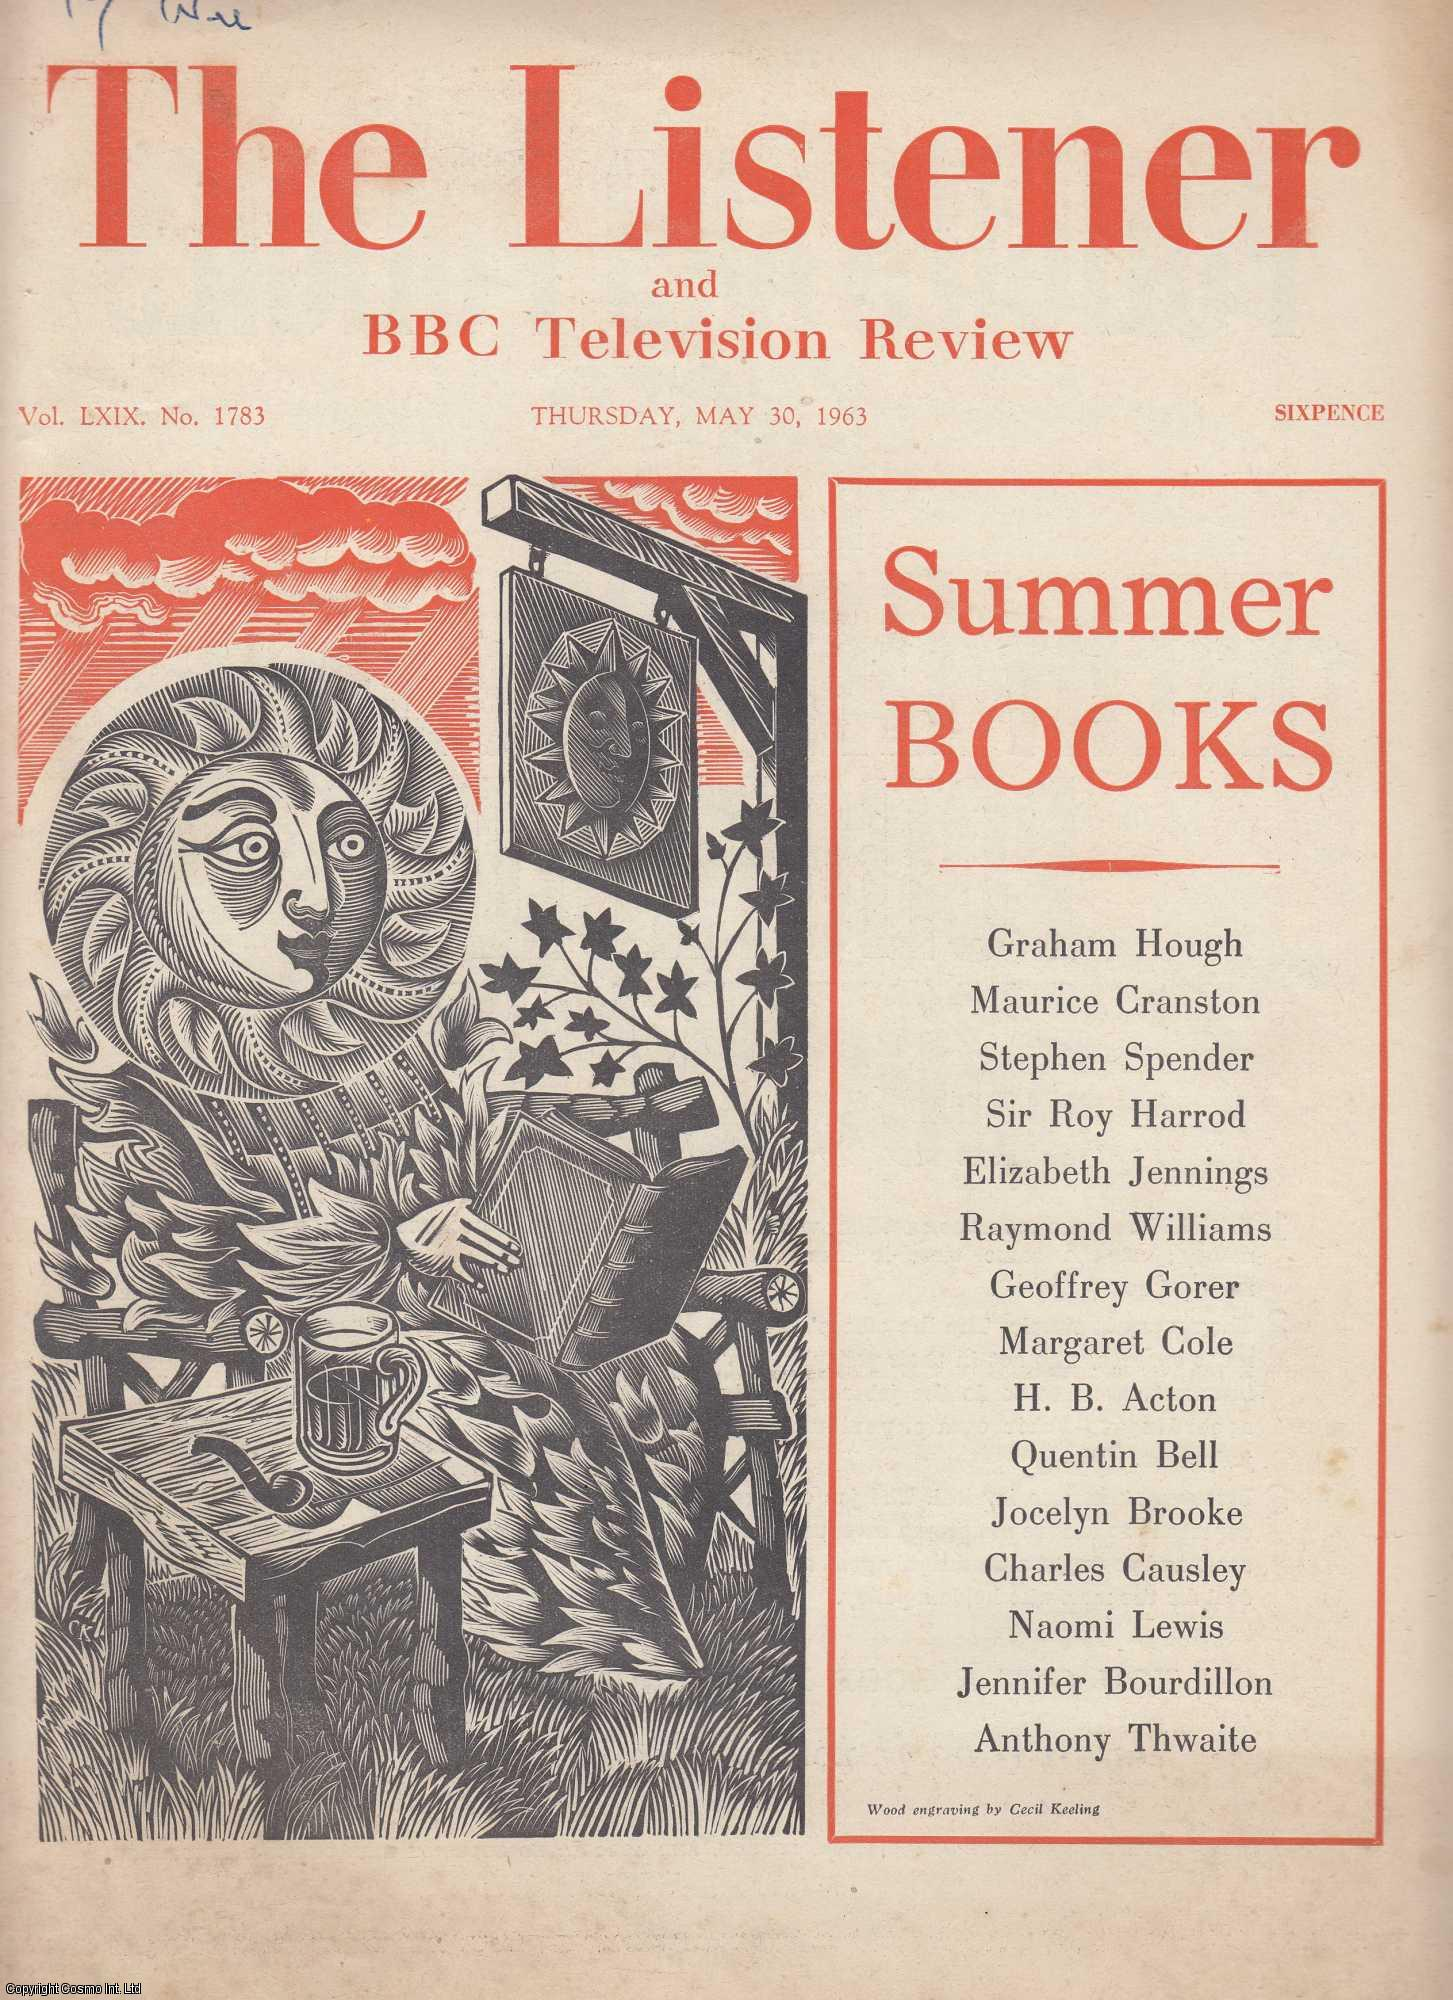 THE LISTENER - Cecil Keeling cover. The Listener and BBC Television Review. Vol. LXIX, No. 1783. May 30, 1963.